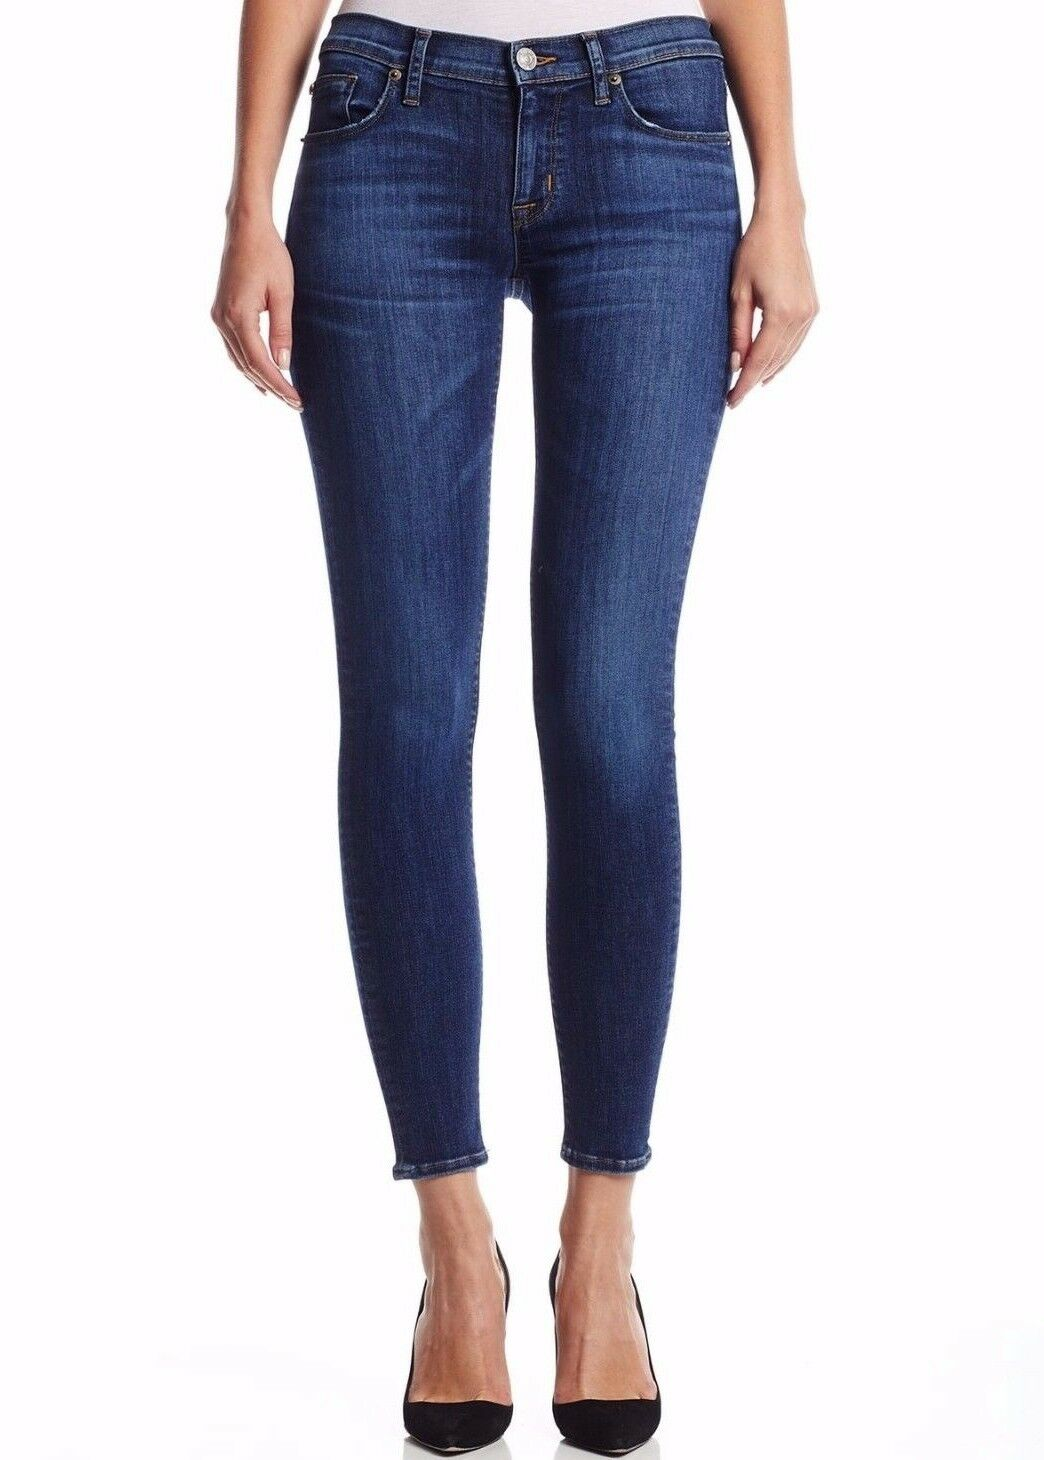 NWT HUDSON Sz27 KRISTA ANKLE SUPER SKINNY-STRETCH JEANS DREAM ON blueE  195